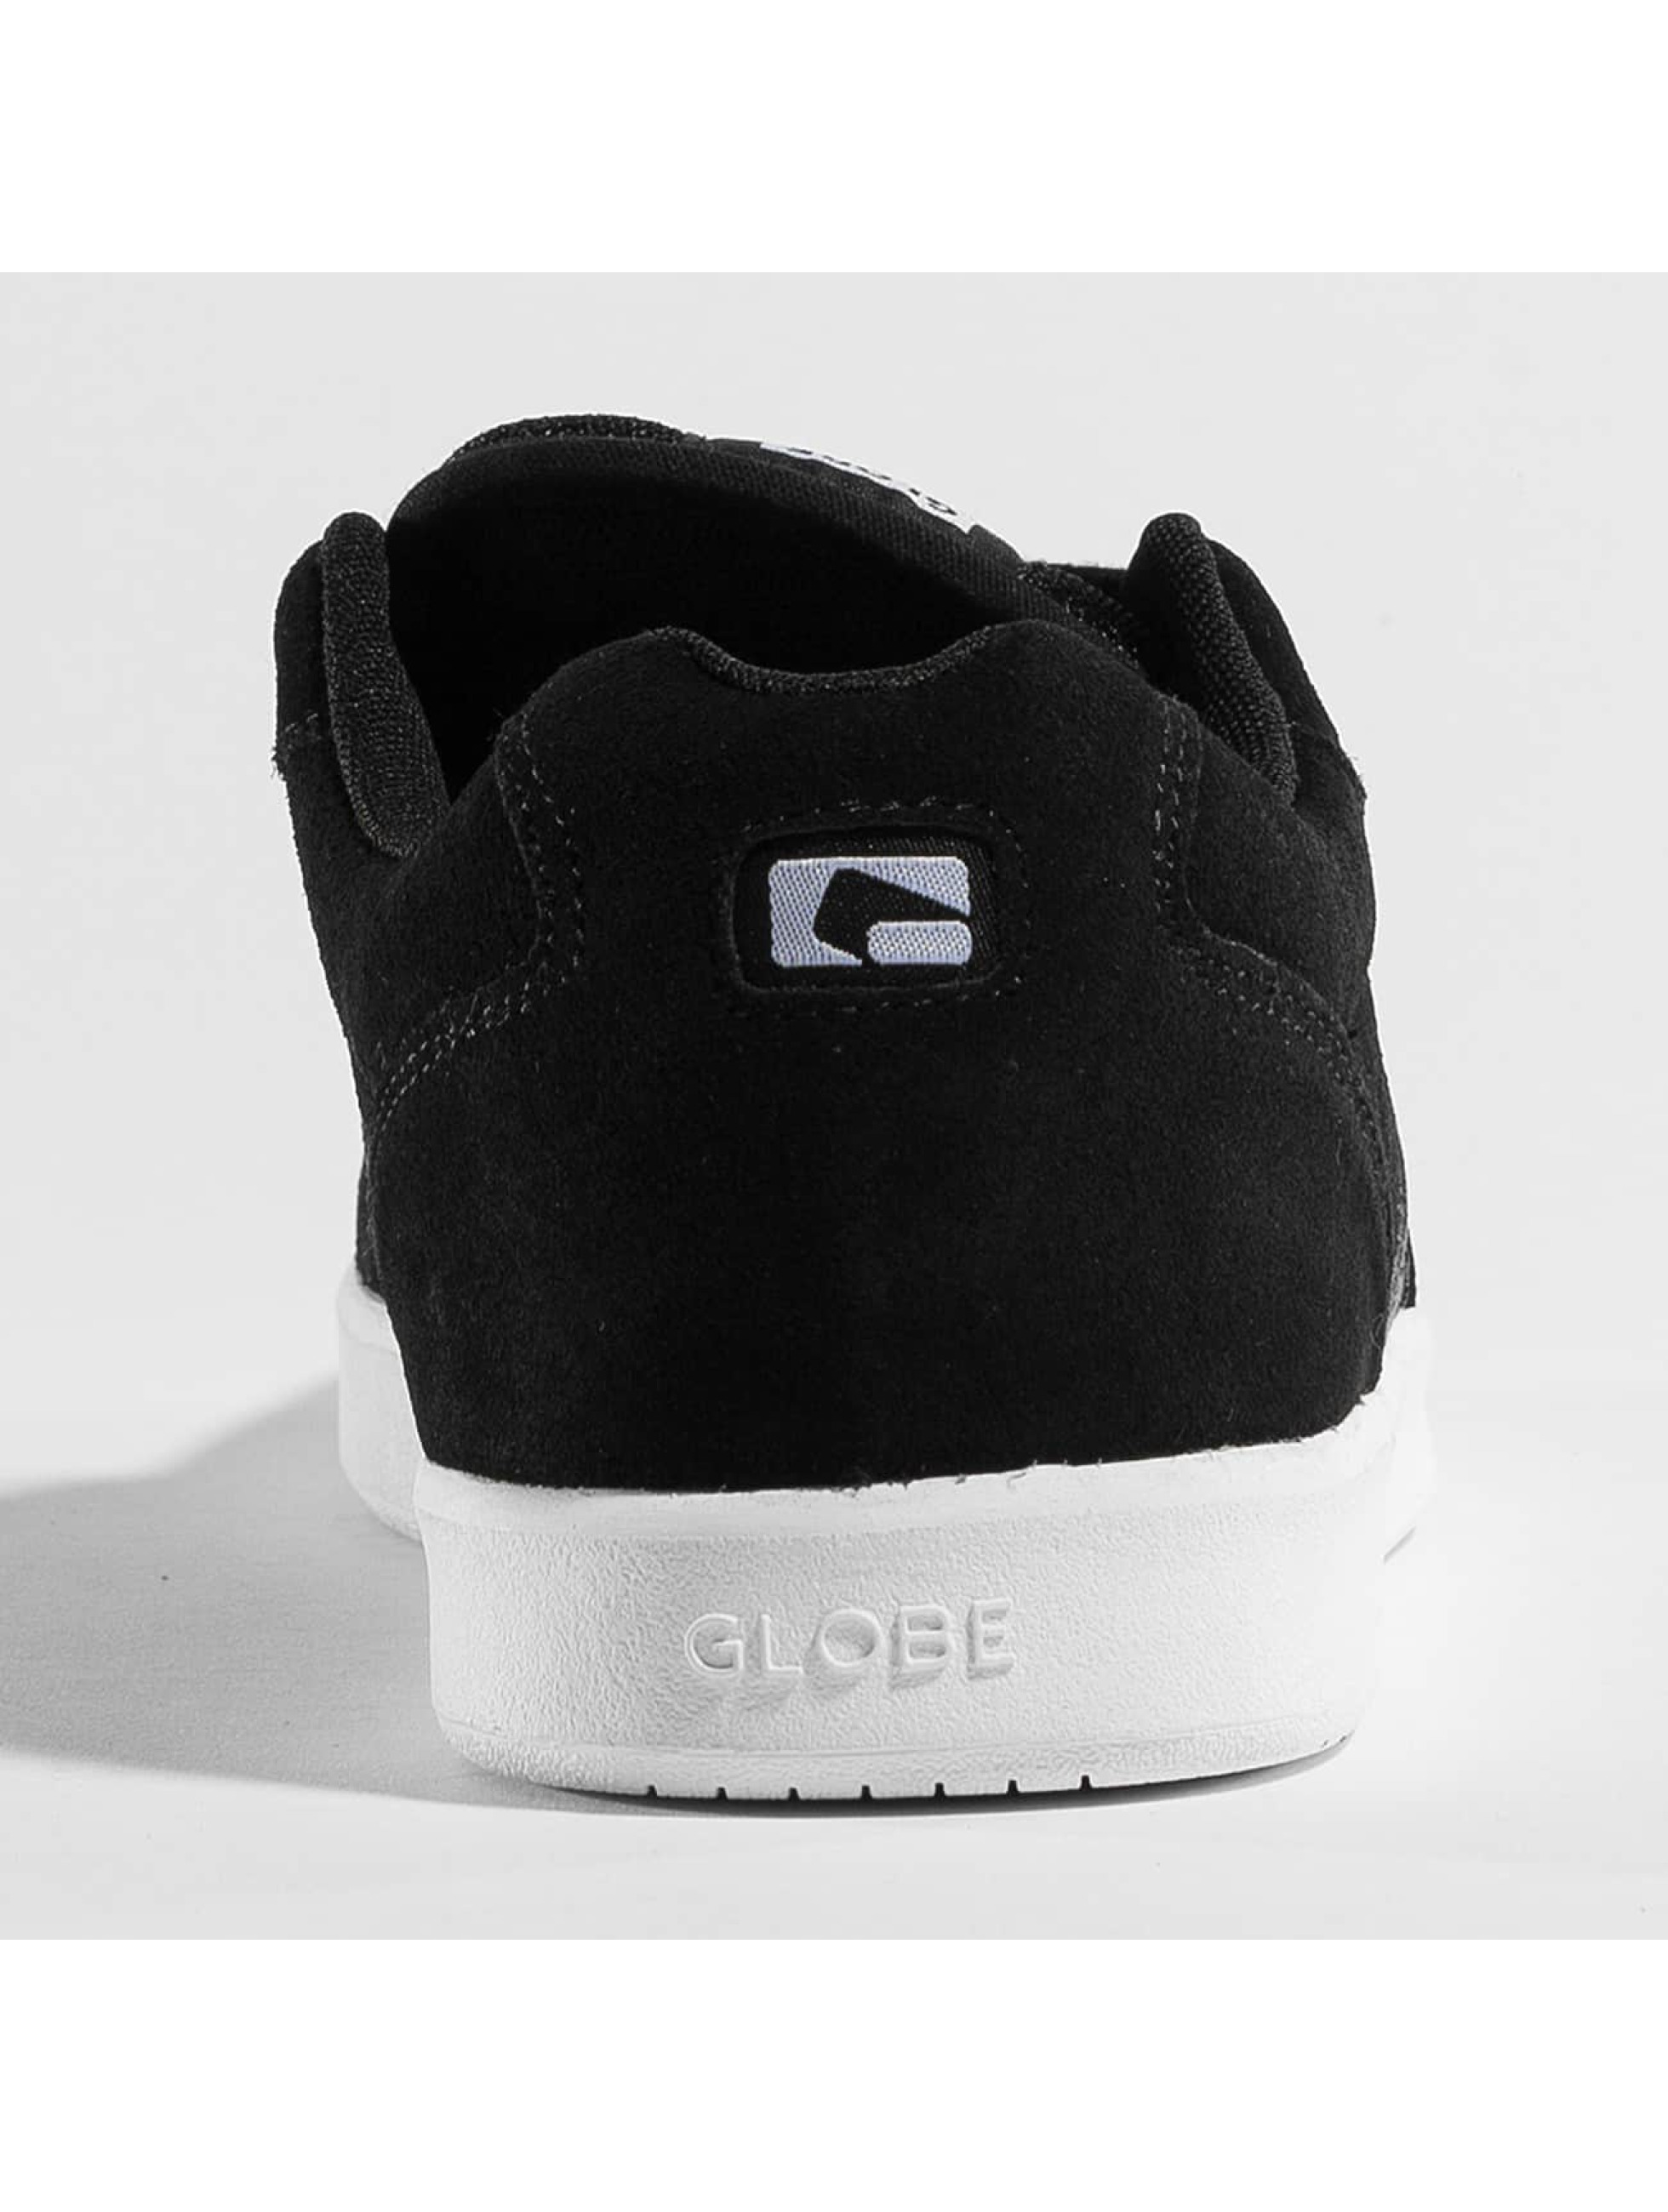 Globe Sneakers Octave black